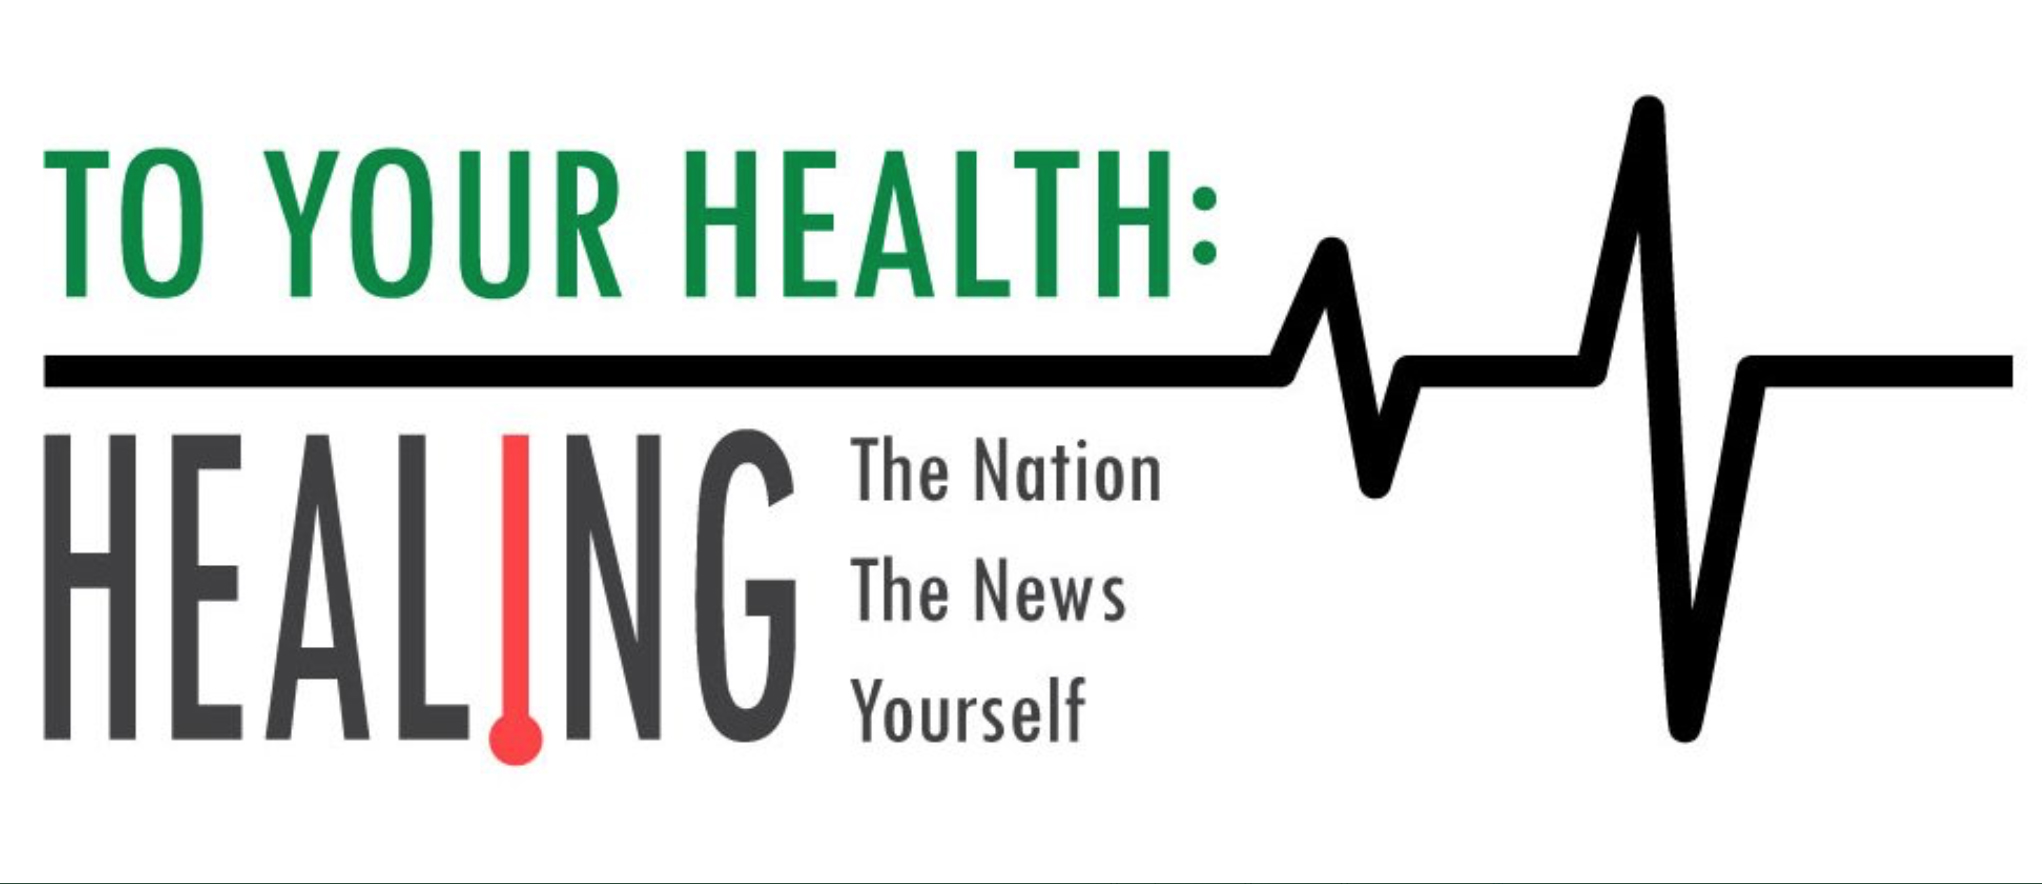 2021 Mayborn Literary Nonfiction Conference to offer discussions on healthcare, social justice and trust in news